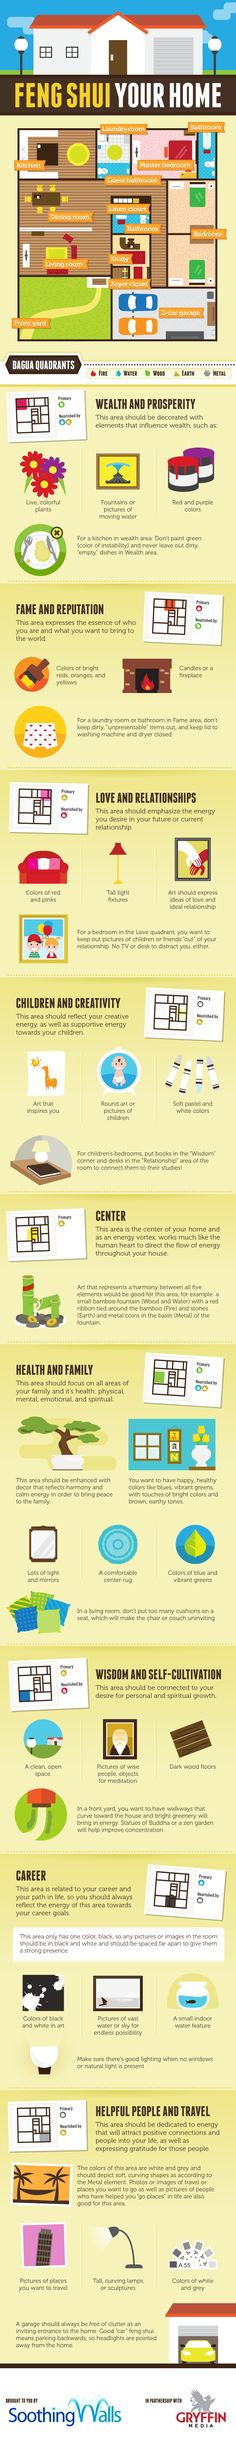 Feng Shui Your Home